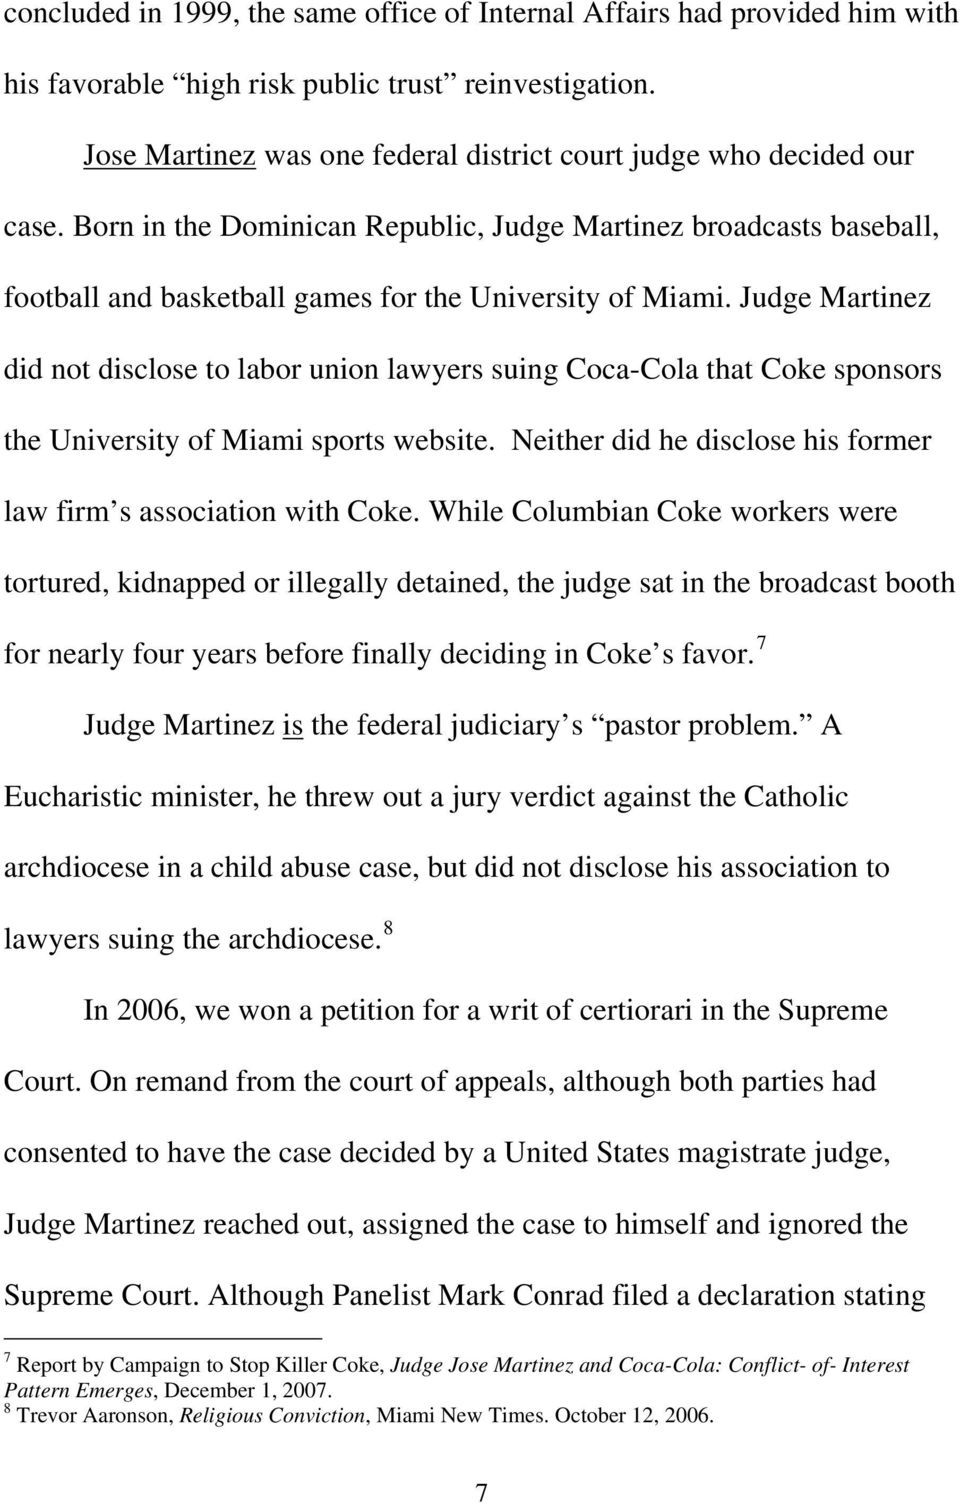 Judge Martinez did not disclose to labor union lawyers suing Coca-Cola that Coke sponsors the University of Miami sports website. Neither did he disclose his former law firm s association with Coke.